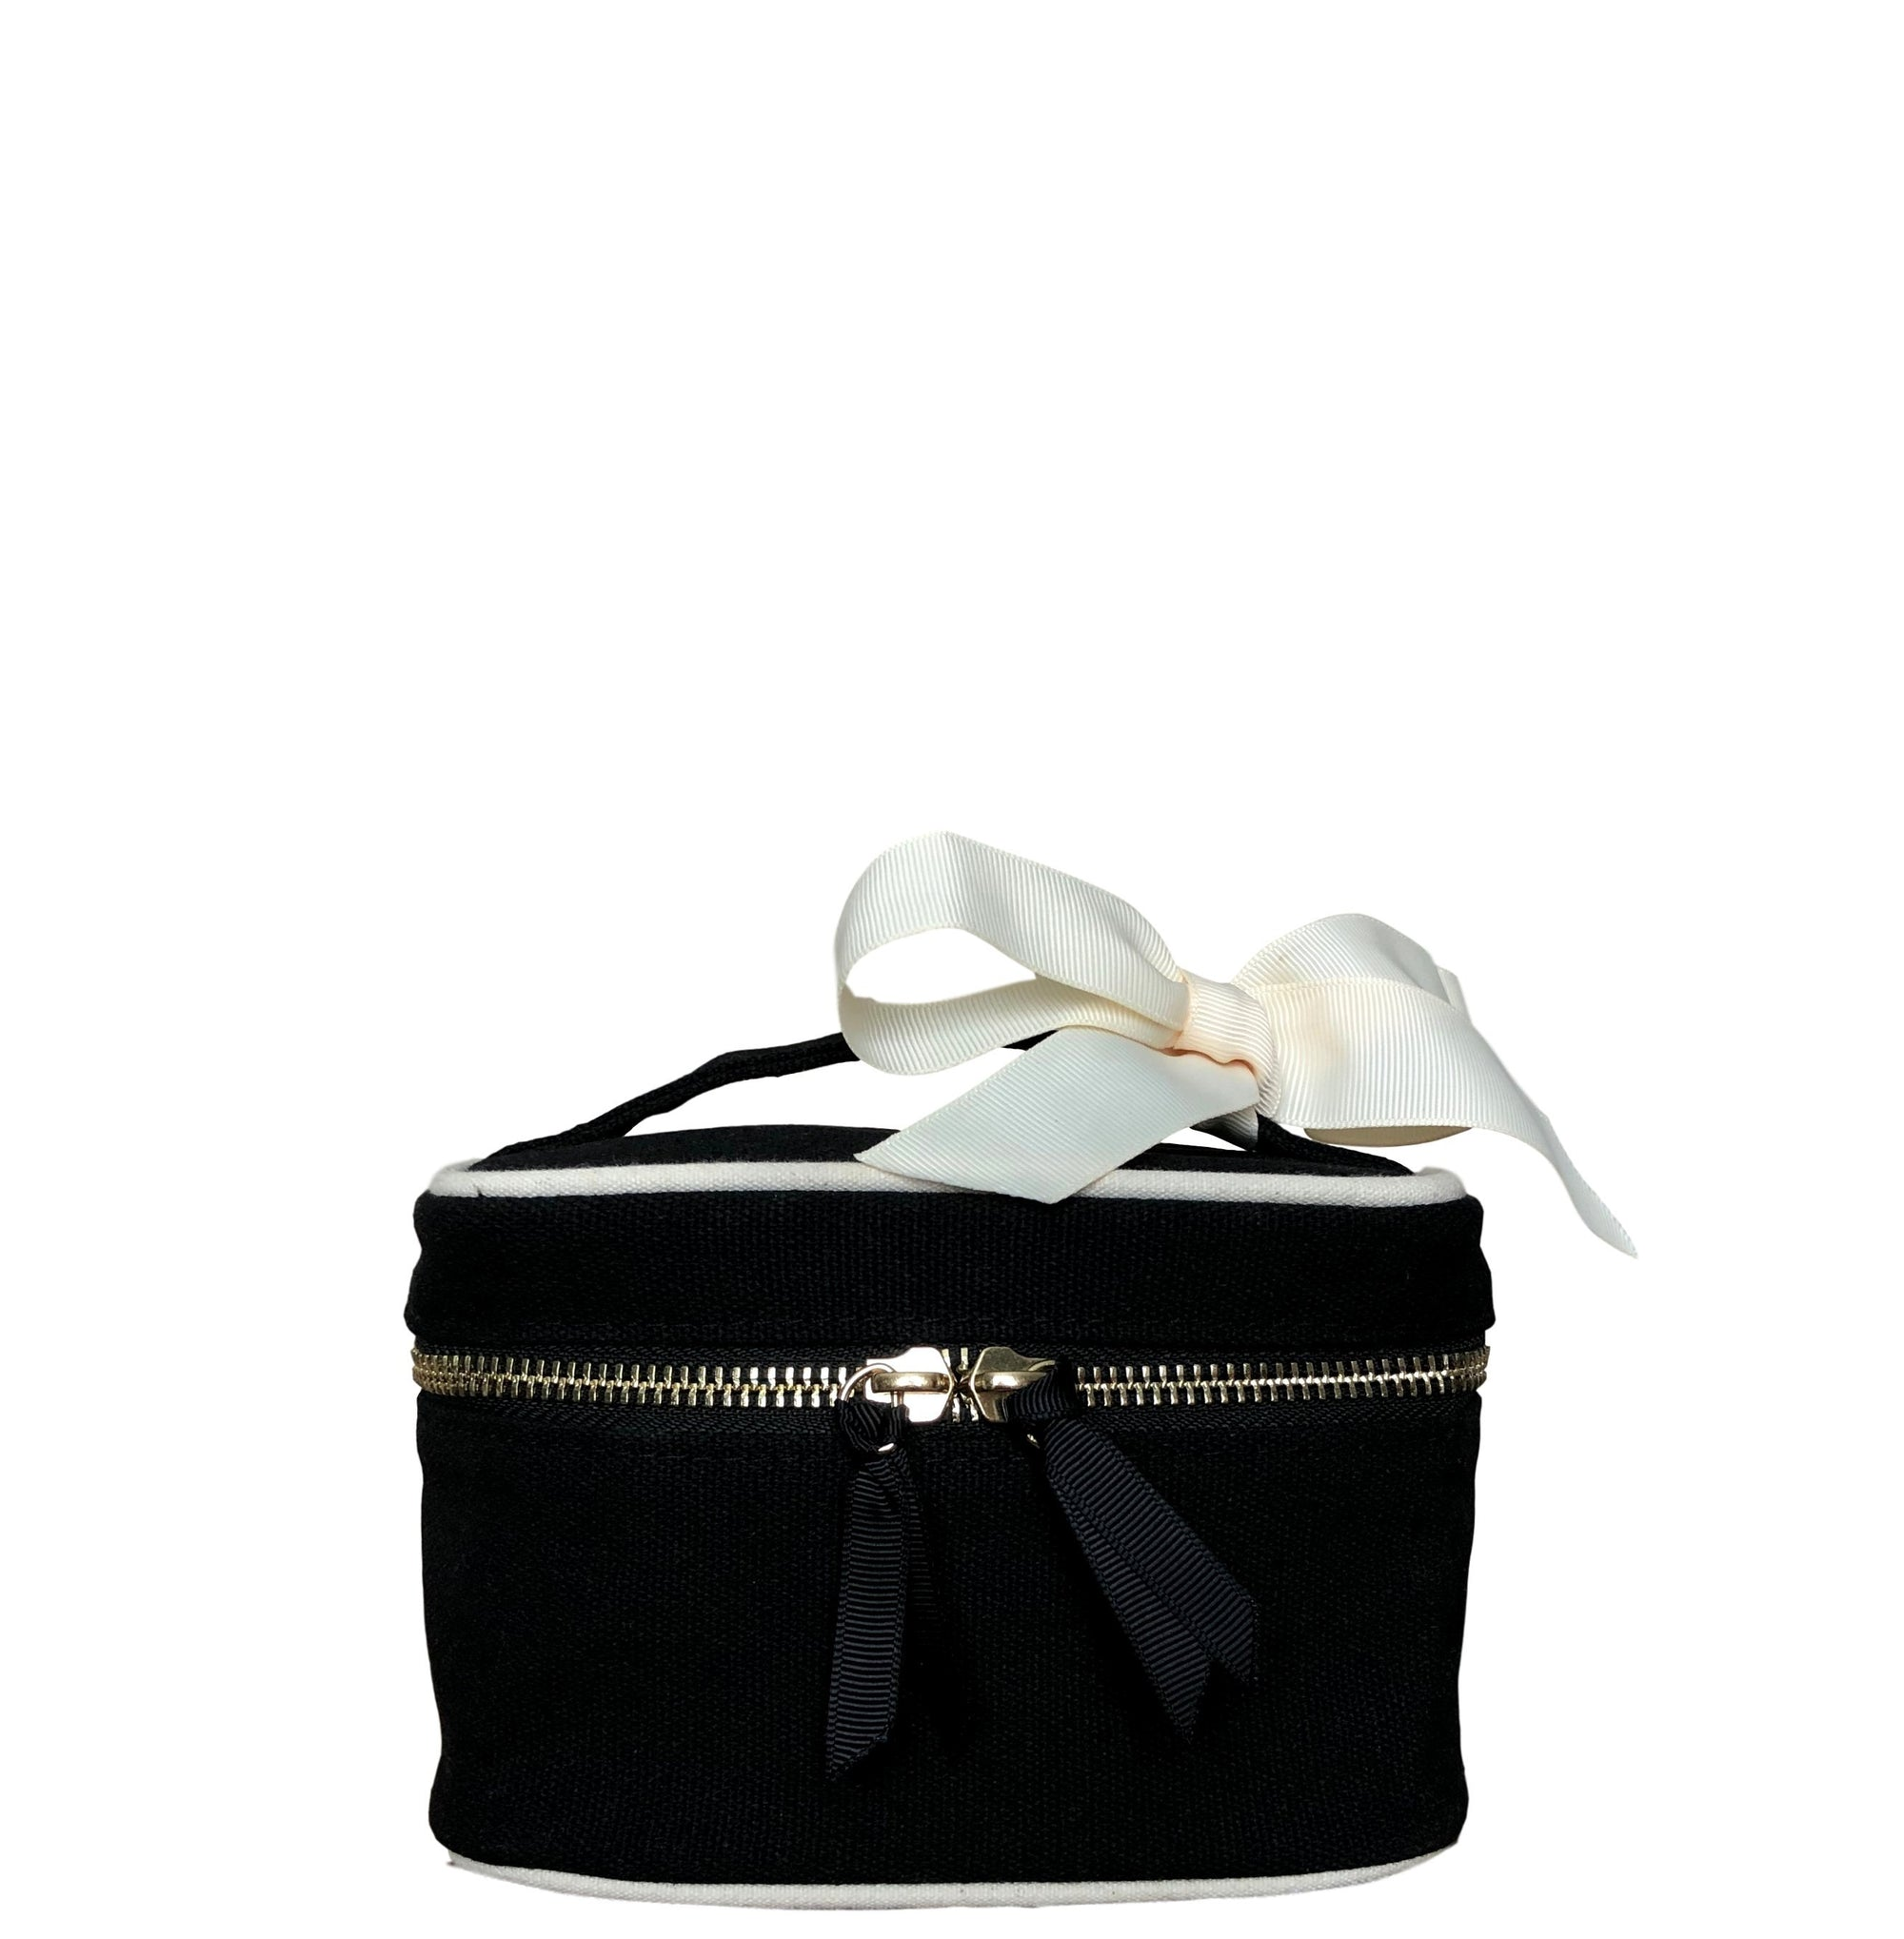 Mini beauty box in black with white details and a white bow attached to the handle.